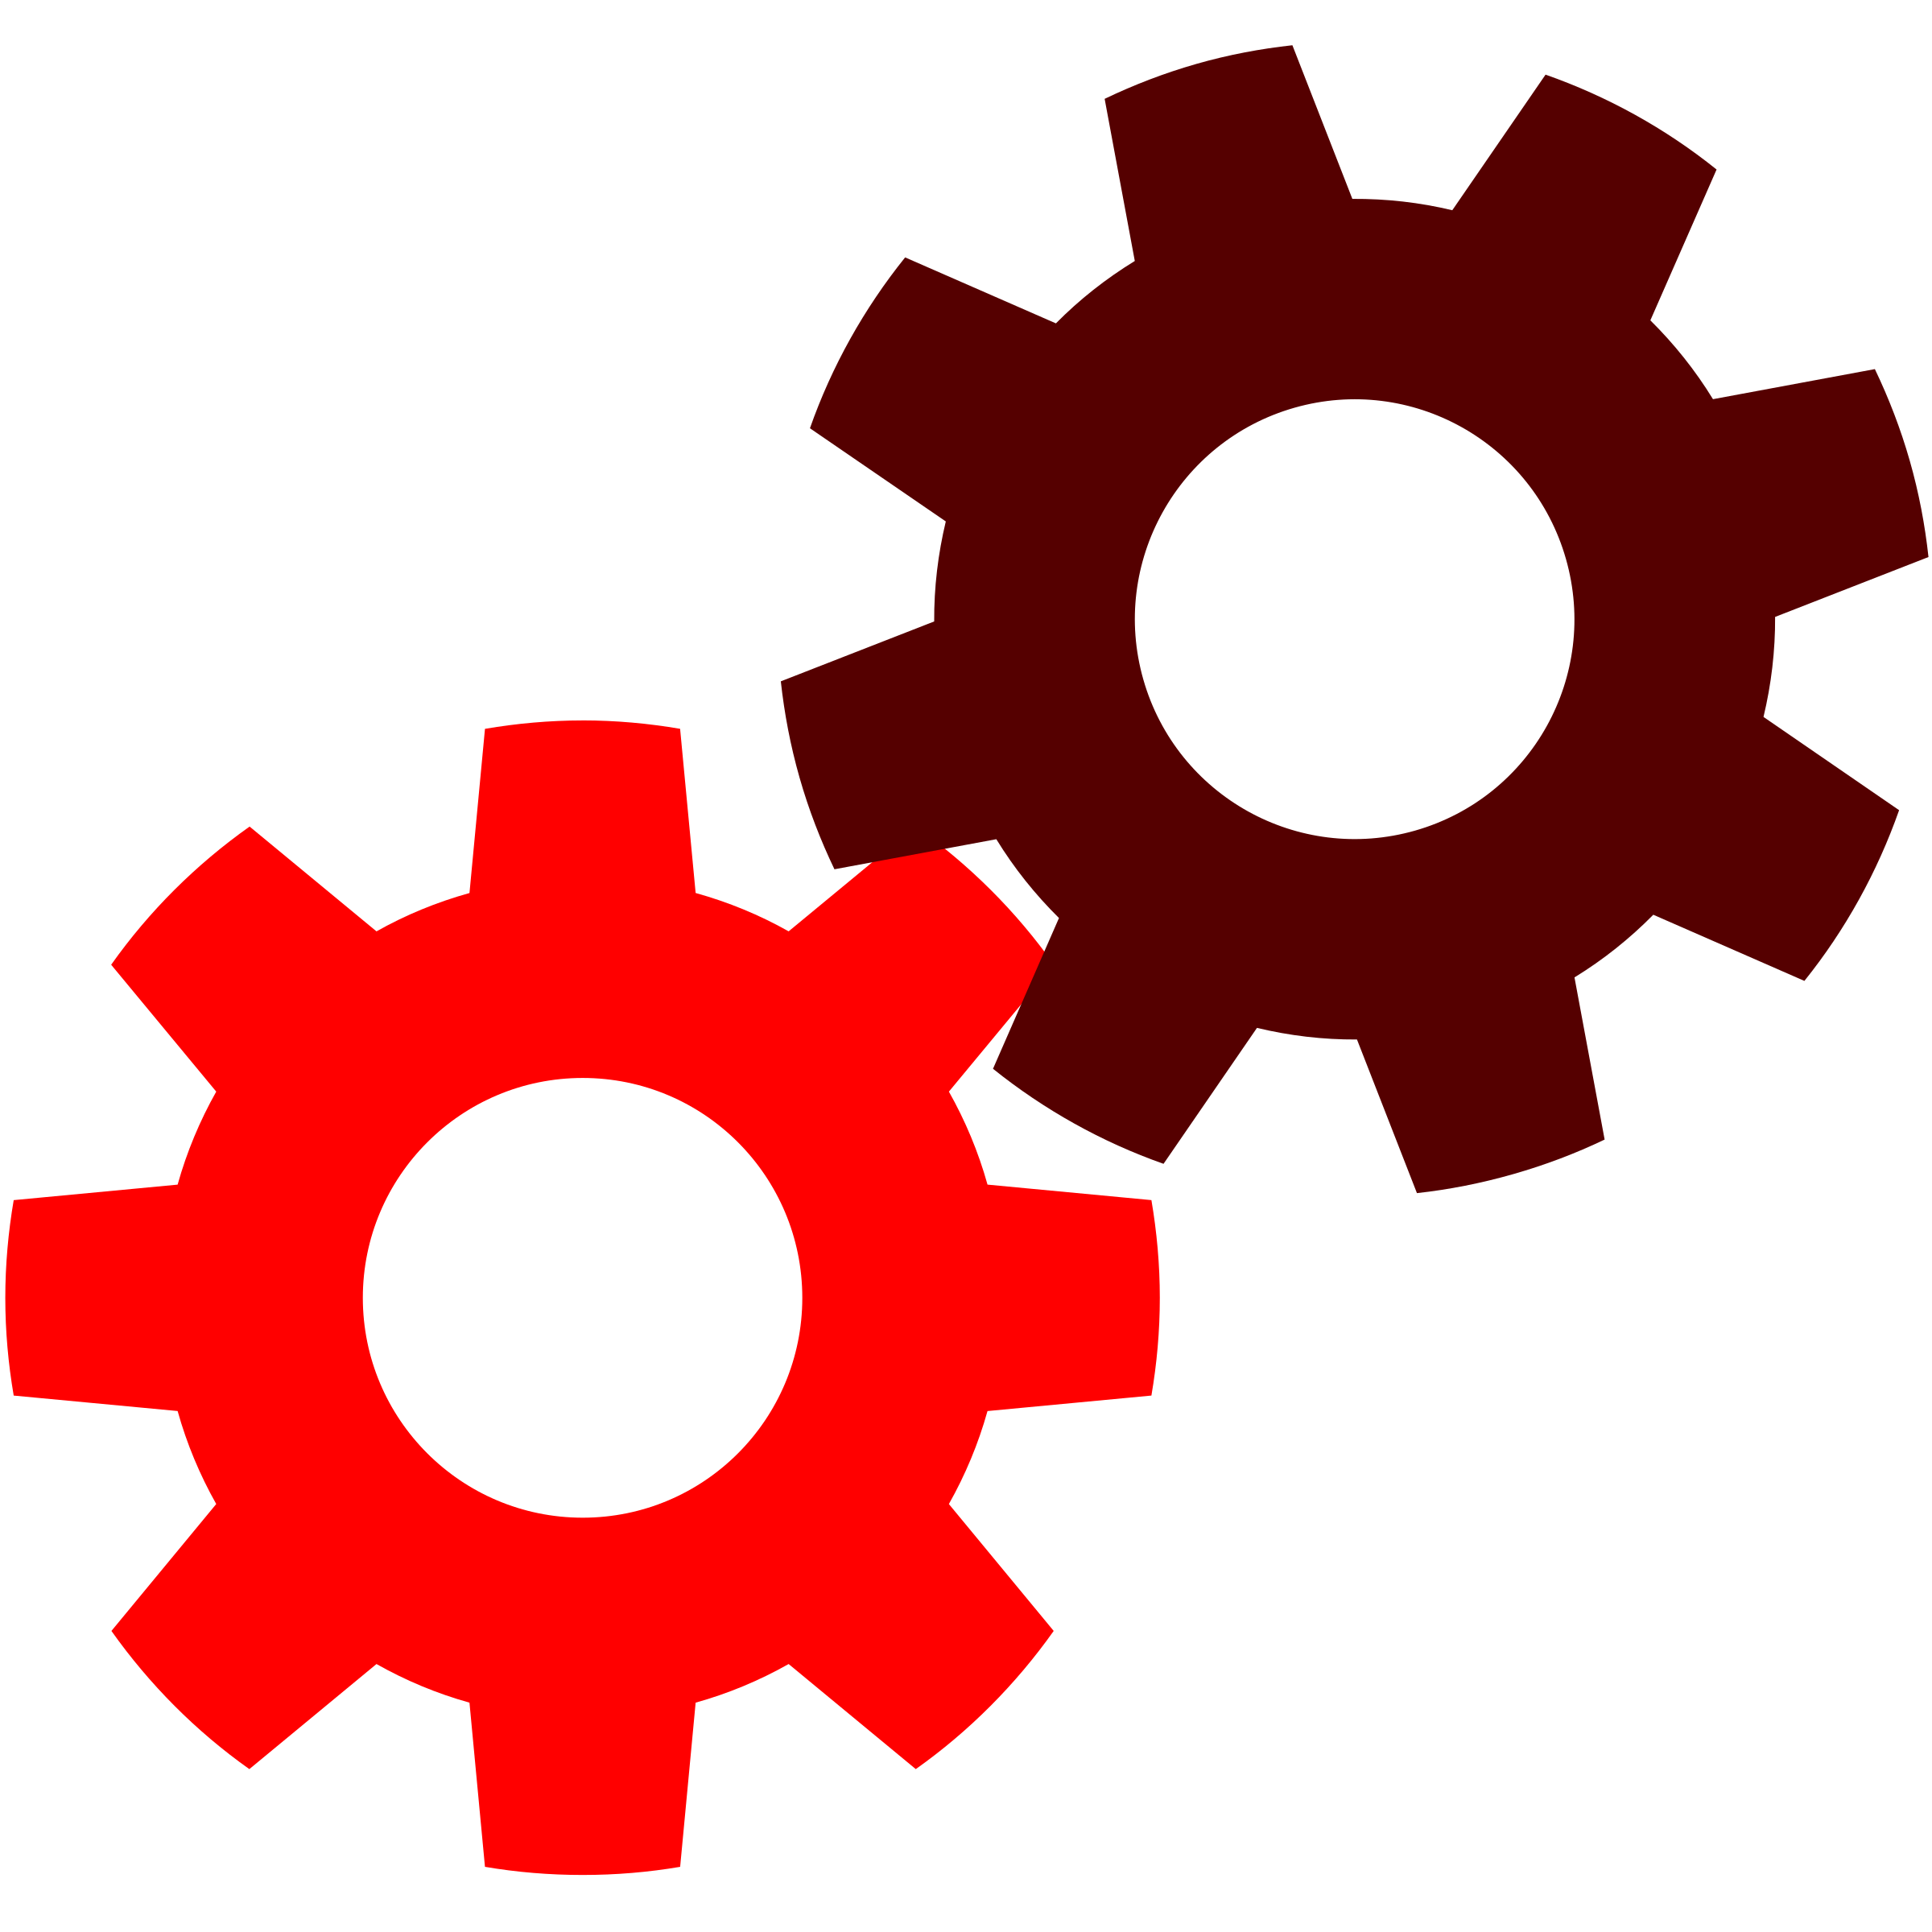 Gear clipart red. Writechnical what is mechanical